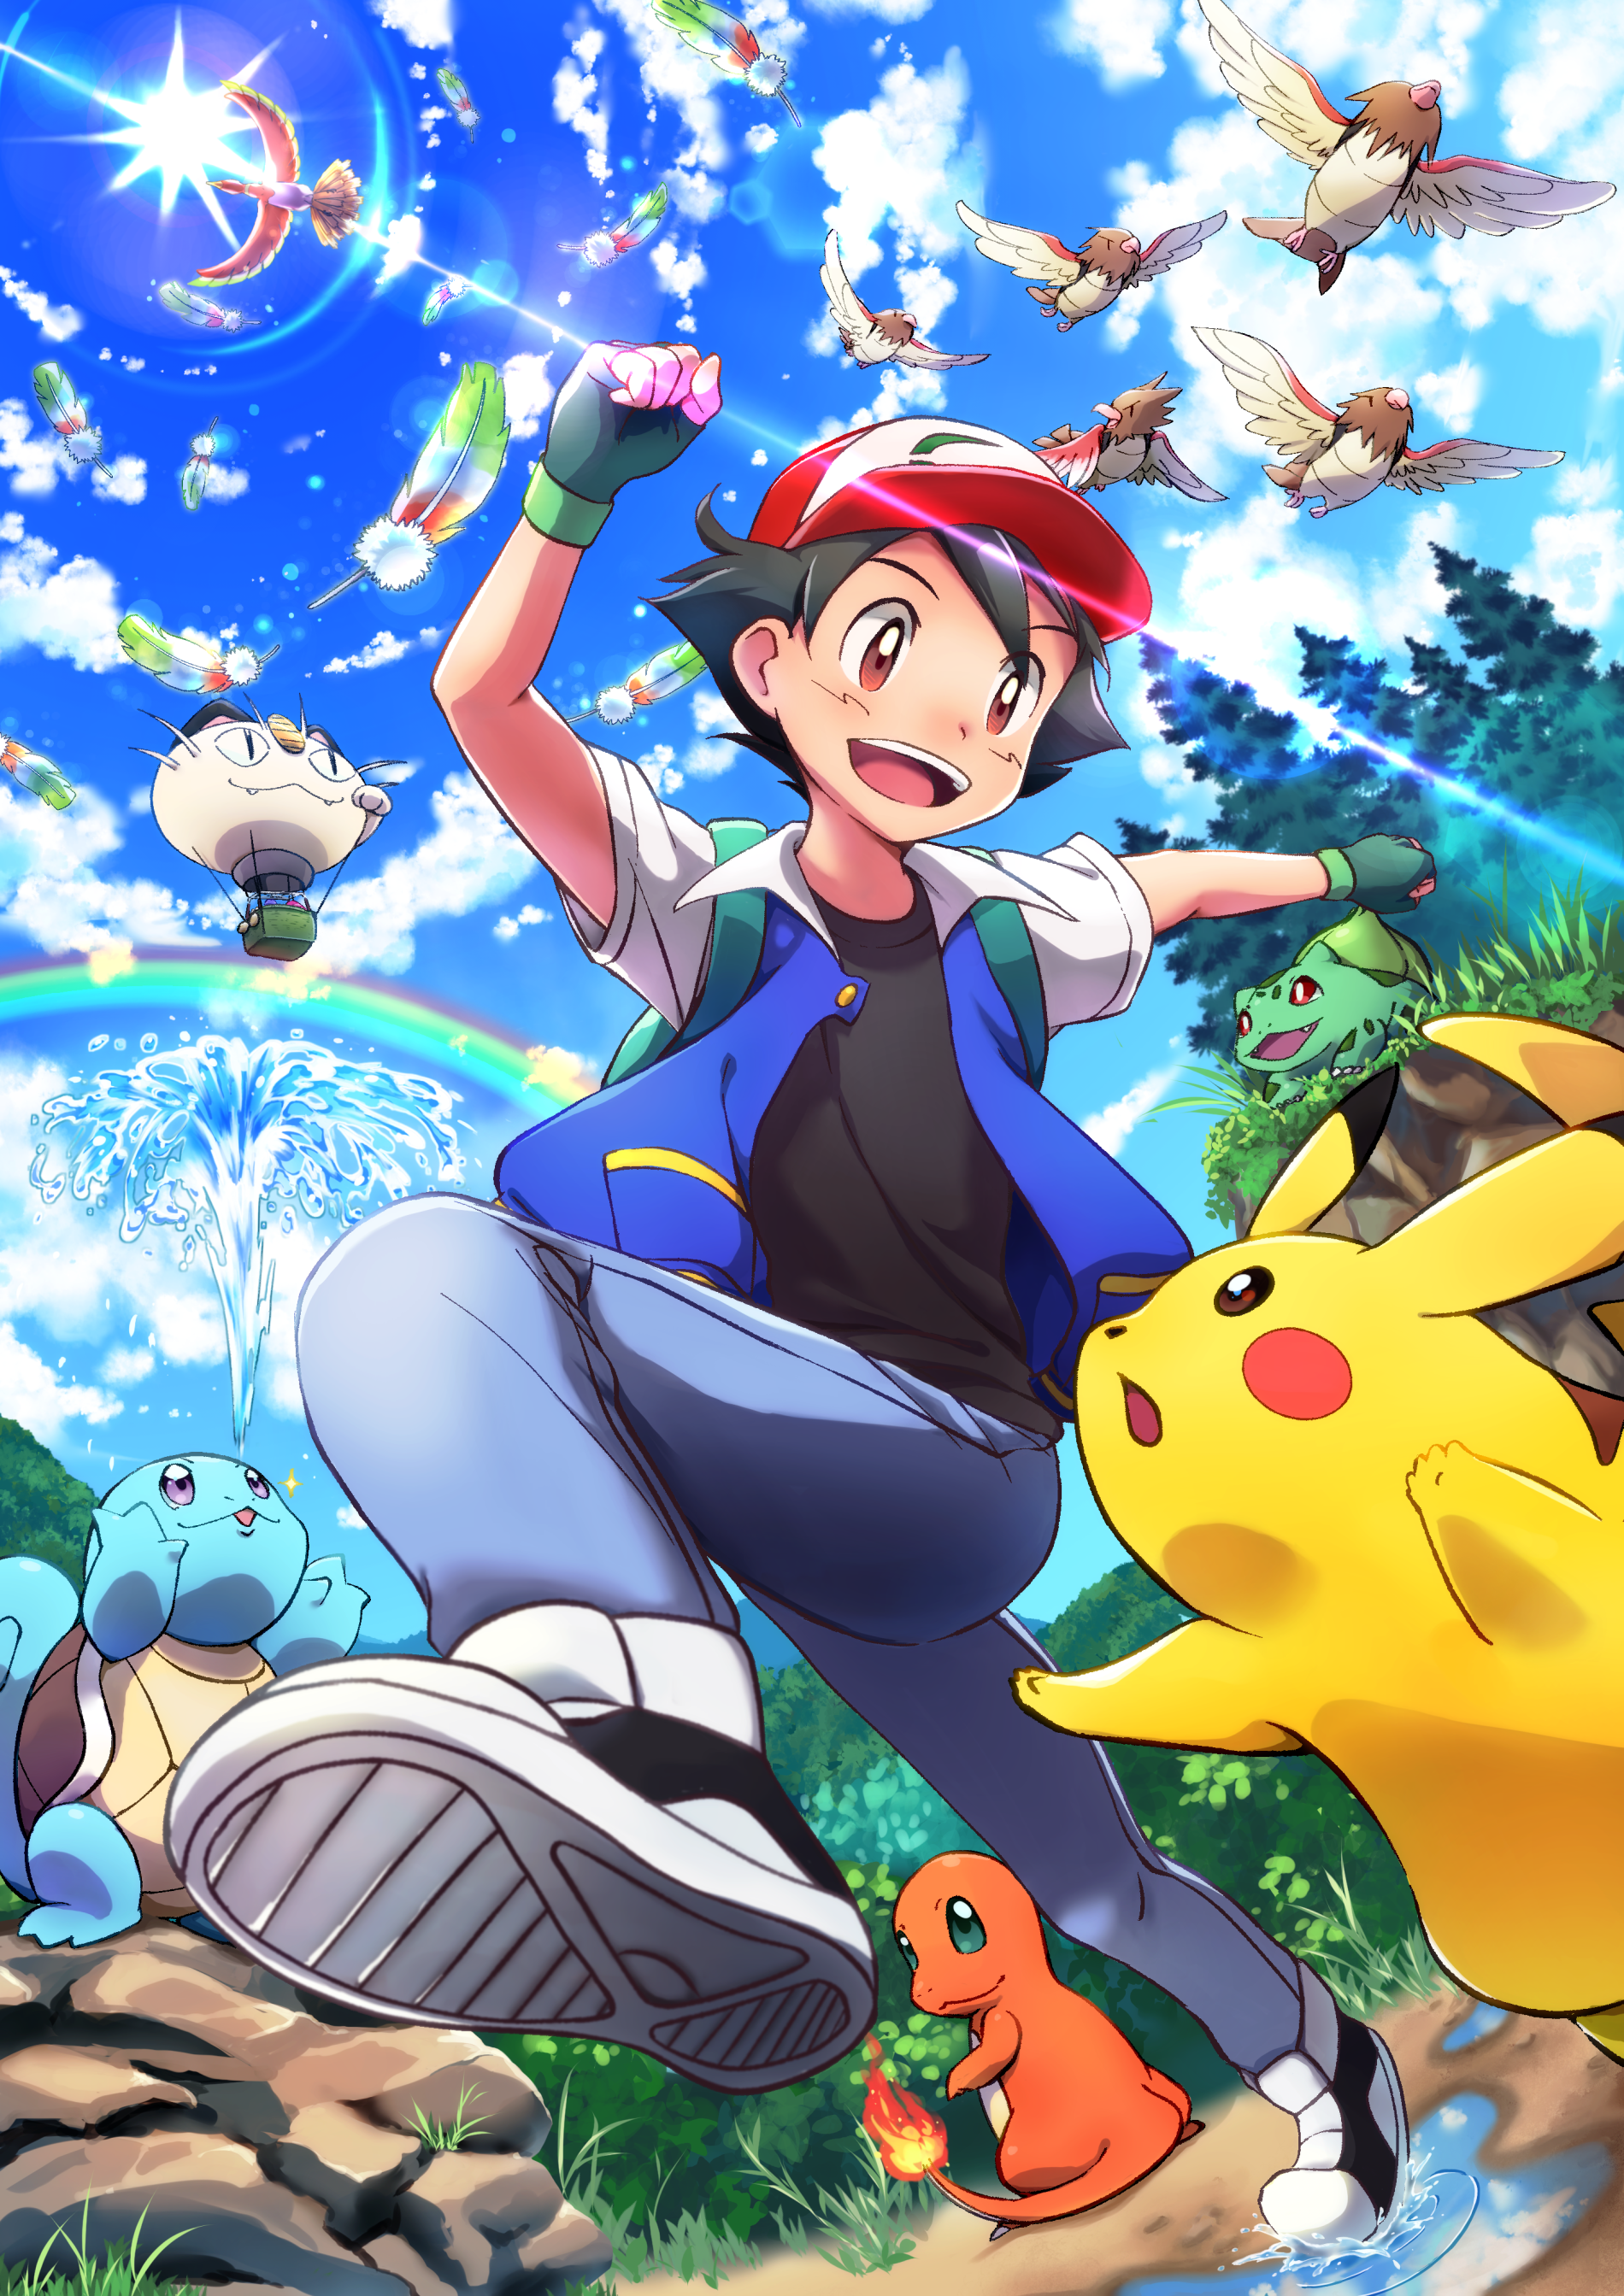 Pokemon The Movie I Choose You Hd Wallpaper Ash De Pokemon Fotos De Pokemon Imagenes De Pokemon